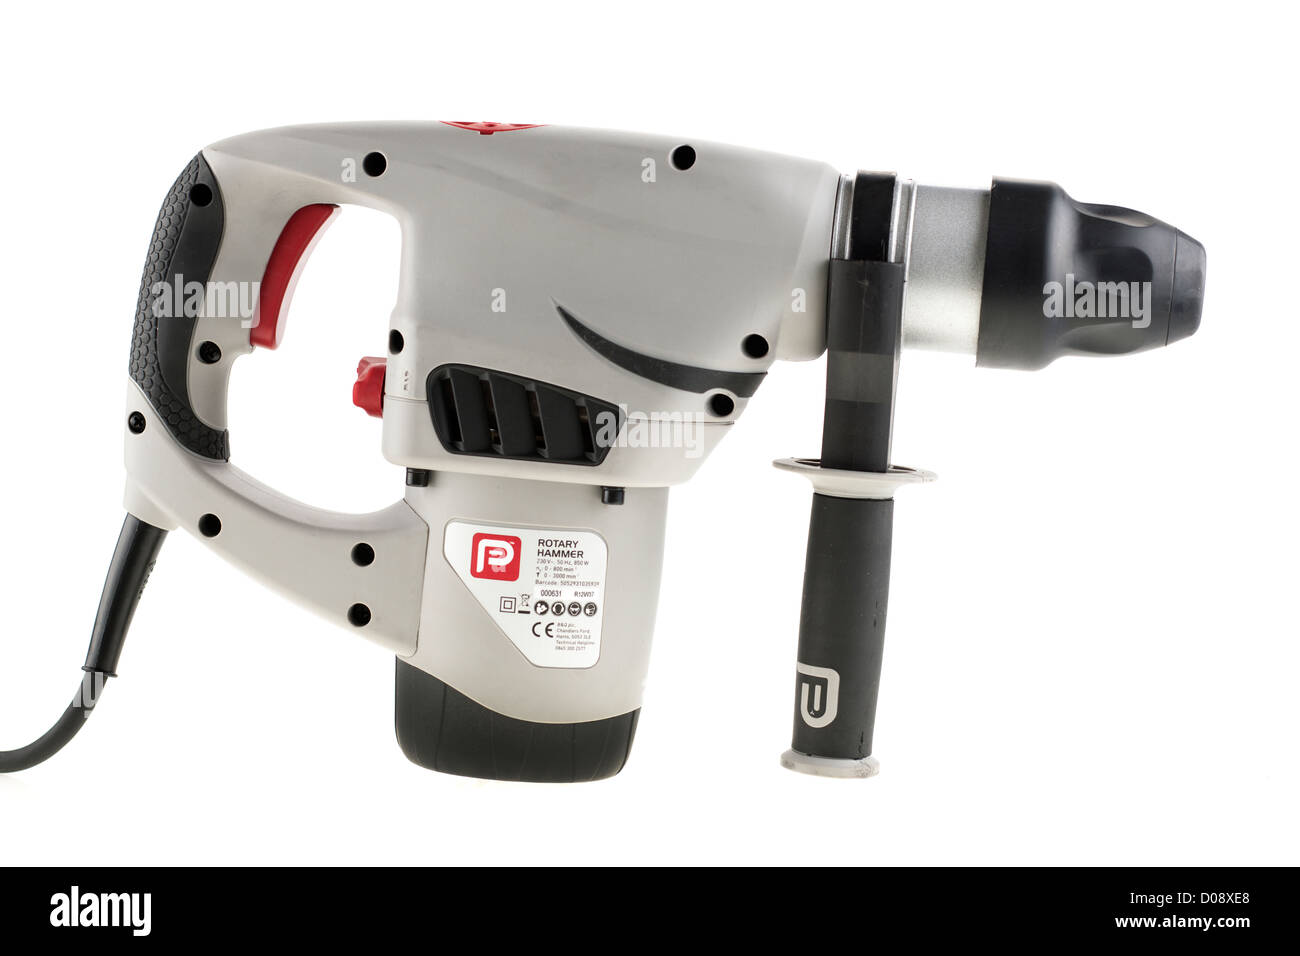 SDS 850 watt Rotary Hammer and chiseling drill from Performance - Stock Image